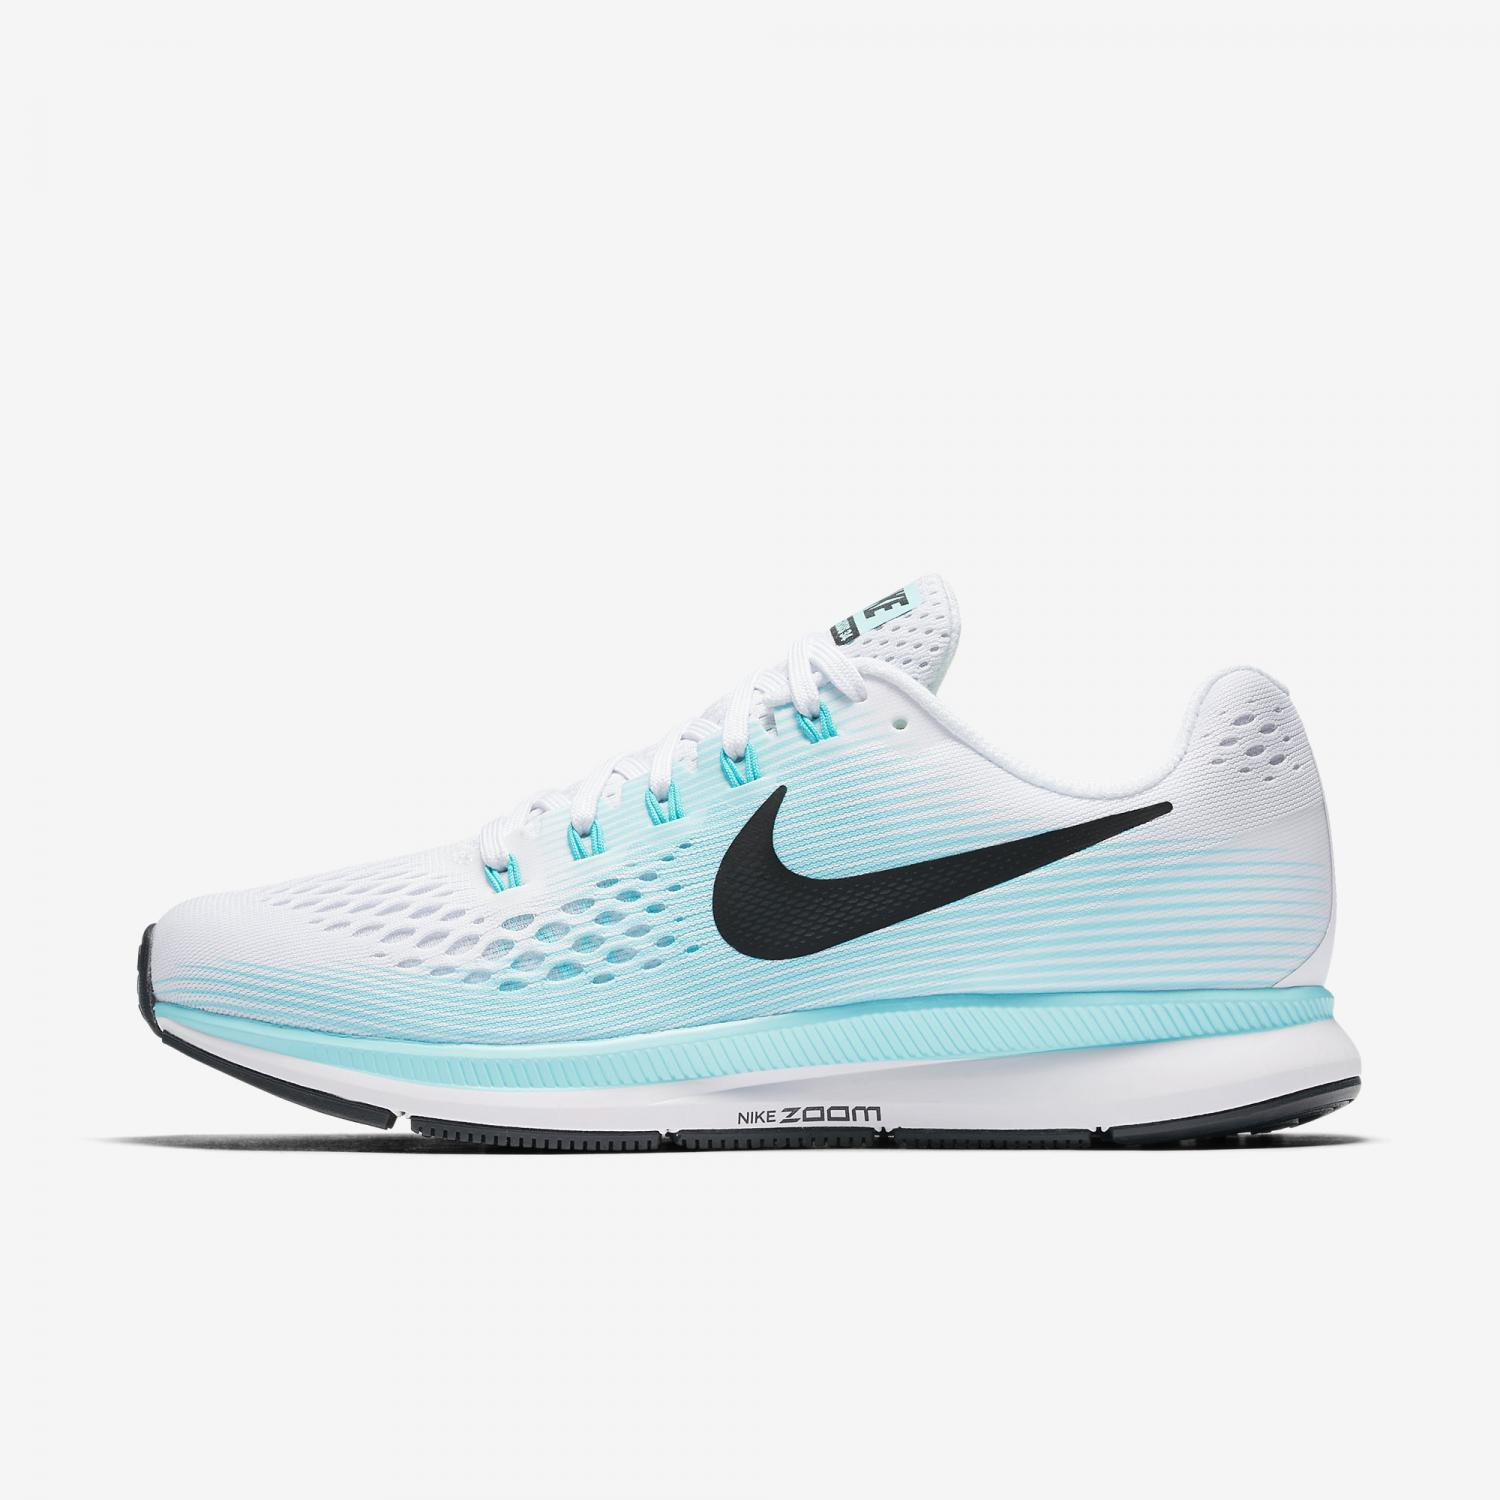 the latest f688a f470d Nike Shoes Air Zoom Pegasus 34 Woman Blackwhite-dark Grey-anthracite -  Tifoshop.com